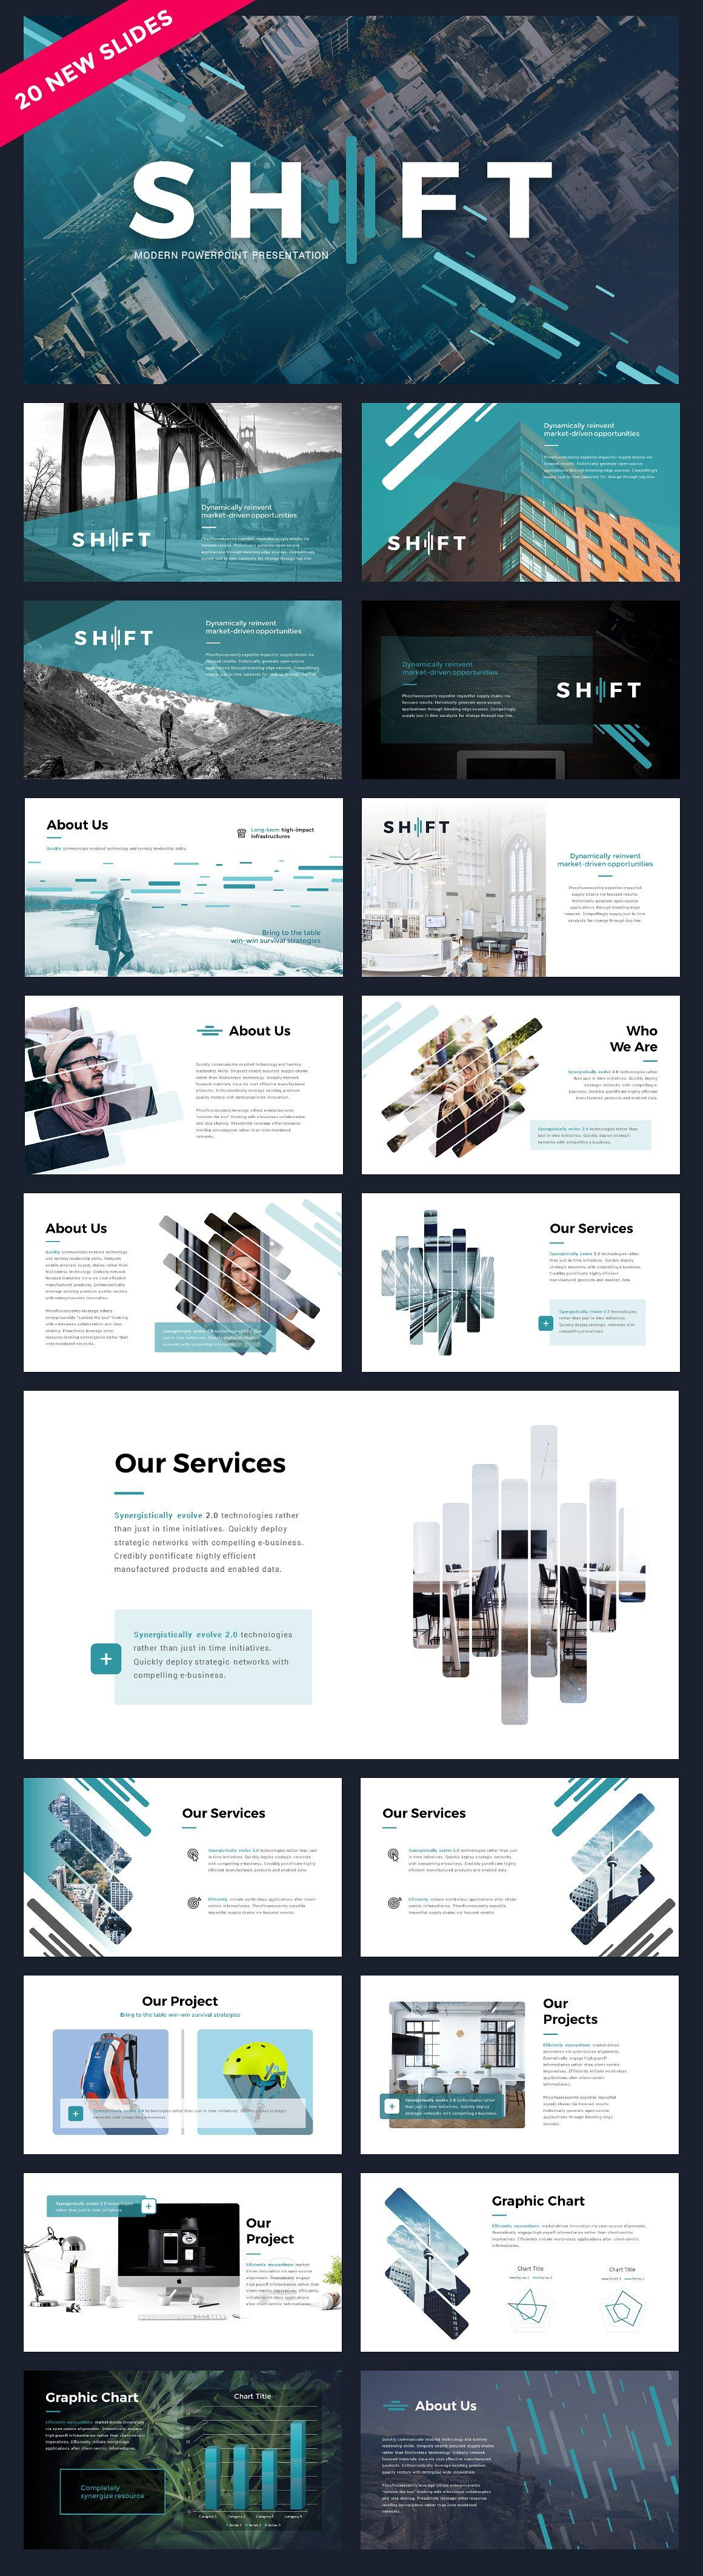 Shift modern powerpoint template apresentao diagramao e modern pitch deck slide presentation template for start ups and other businesses features interesting toneelgroepblik Image collections